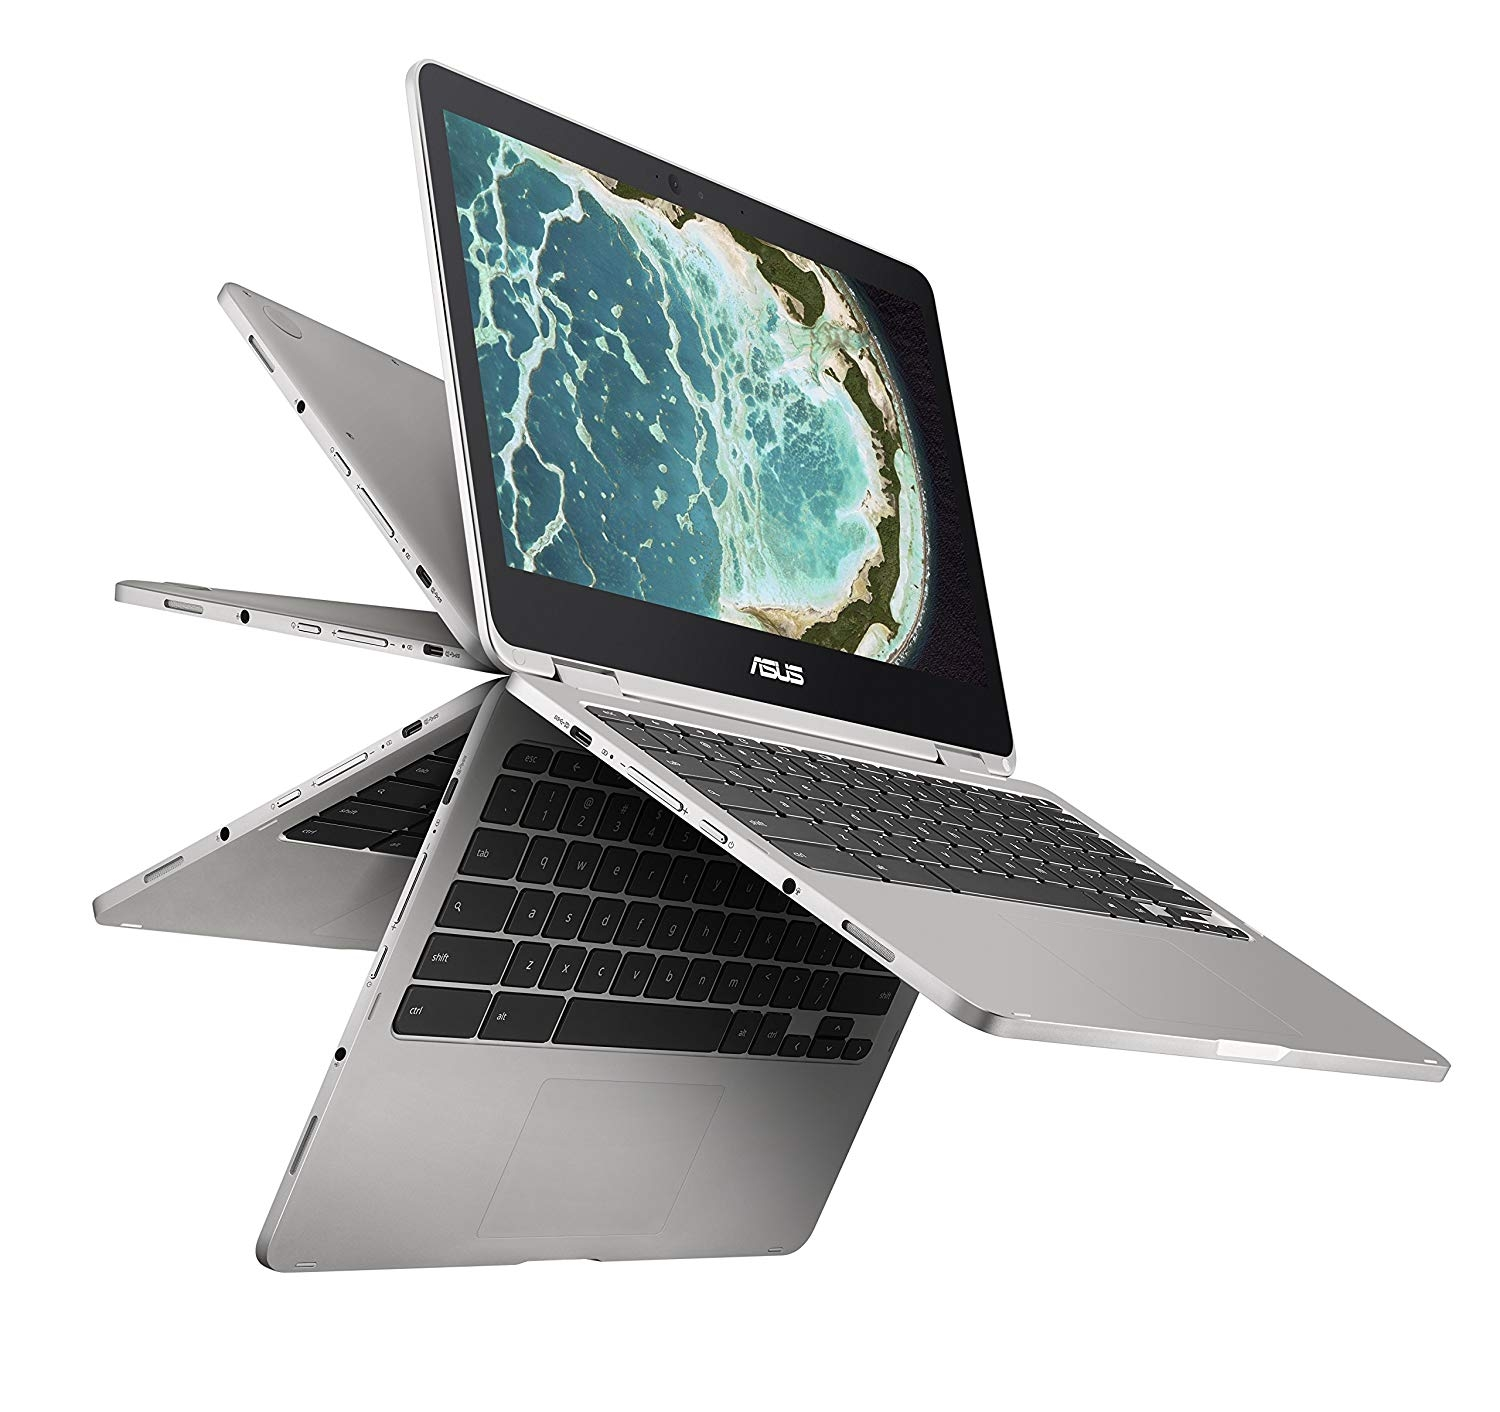 Hot New Laptop Deals